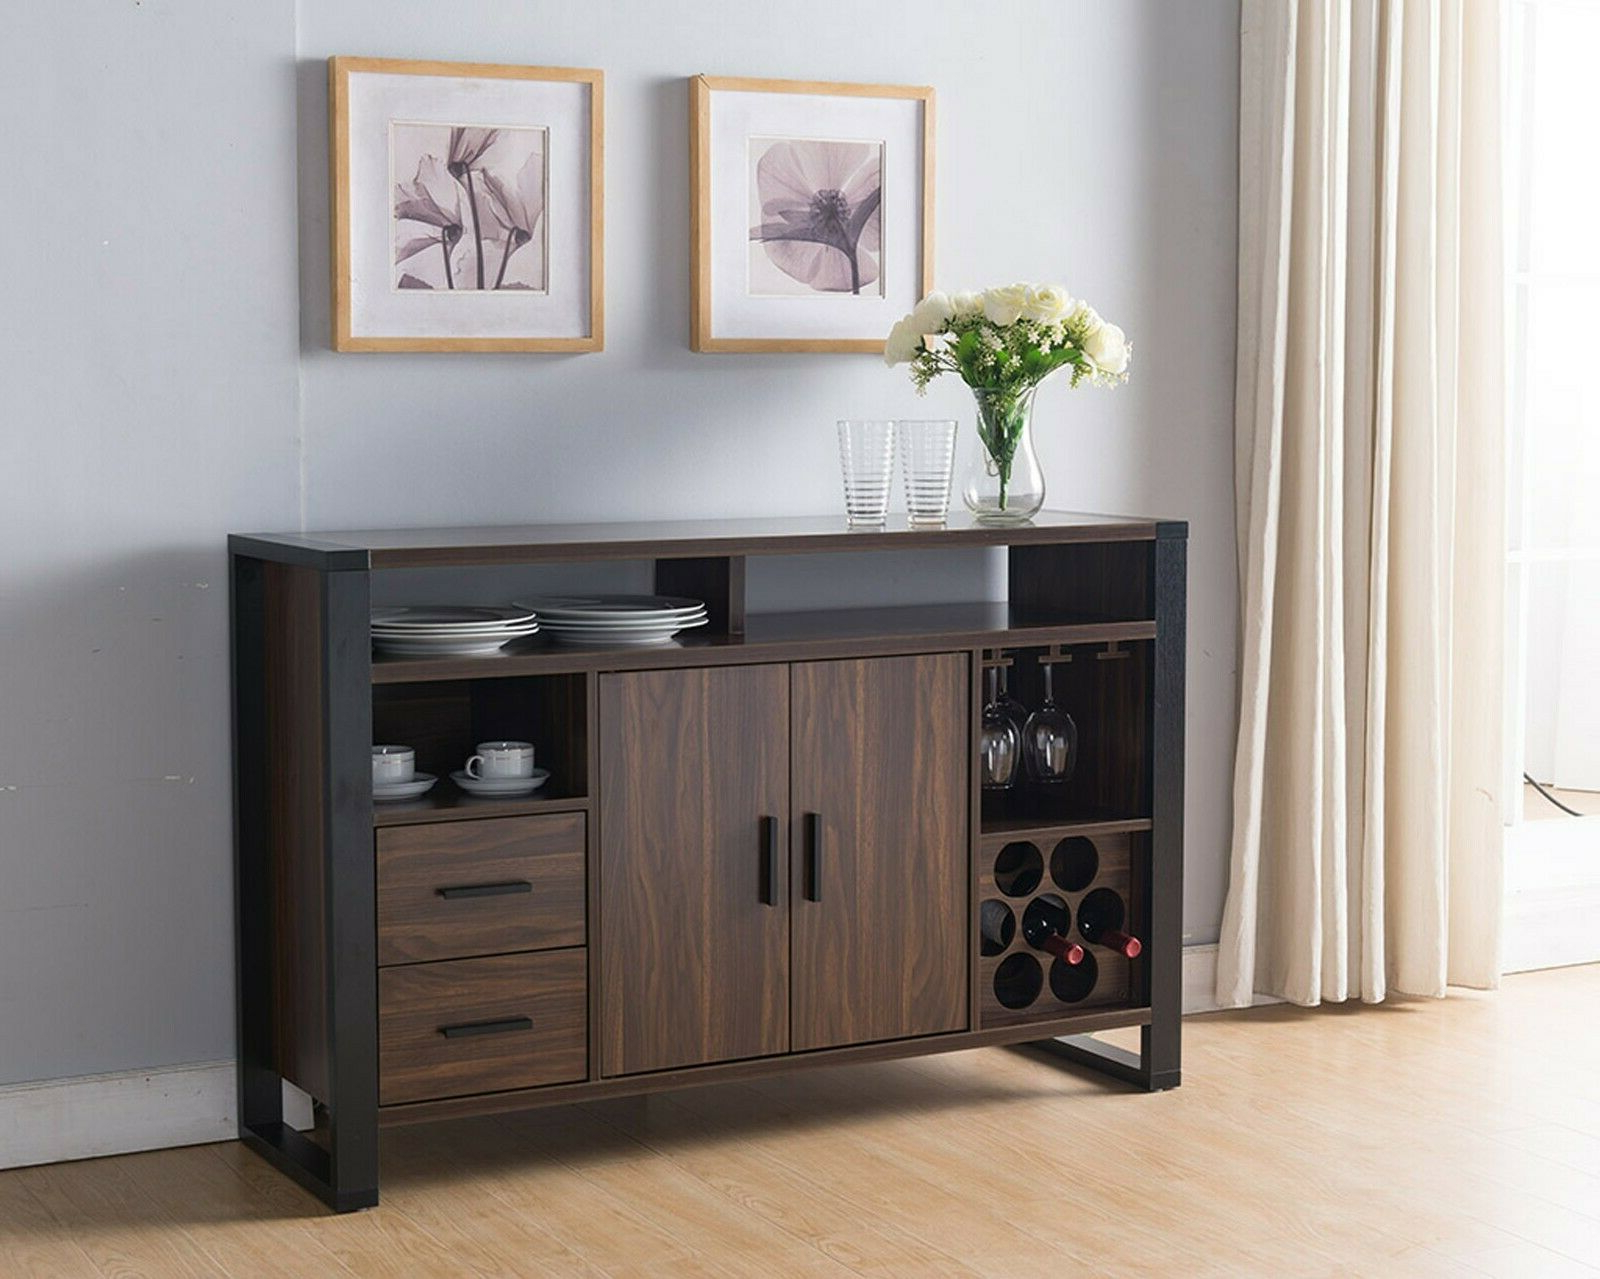 161640 Smart Home Dark Walnut & Black Wine Bar Sideboard Buffet Table Within Black Hutch Buffets With Stainless Top (View 1 of 20)